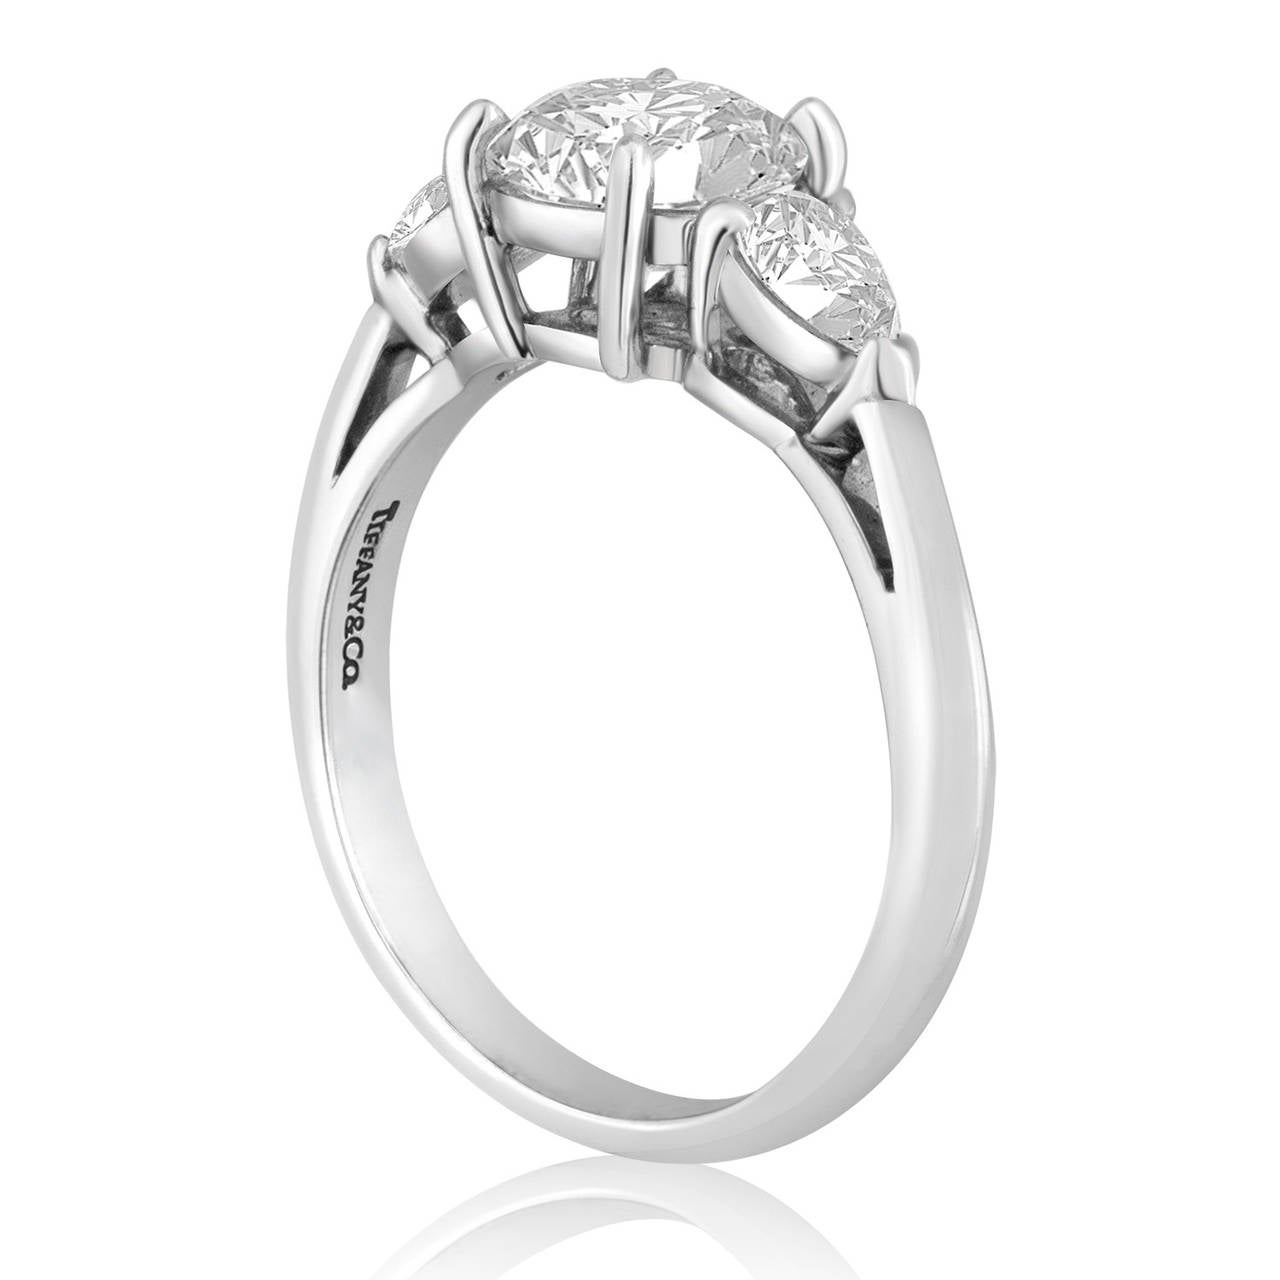 Tiffany & Co. 1.53 Carat G VS1 Diamond Platinum Engagement Ring 2